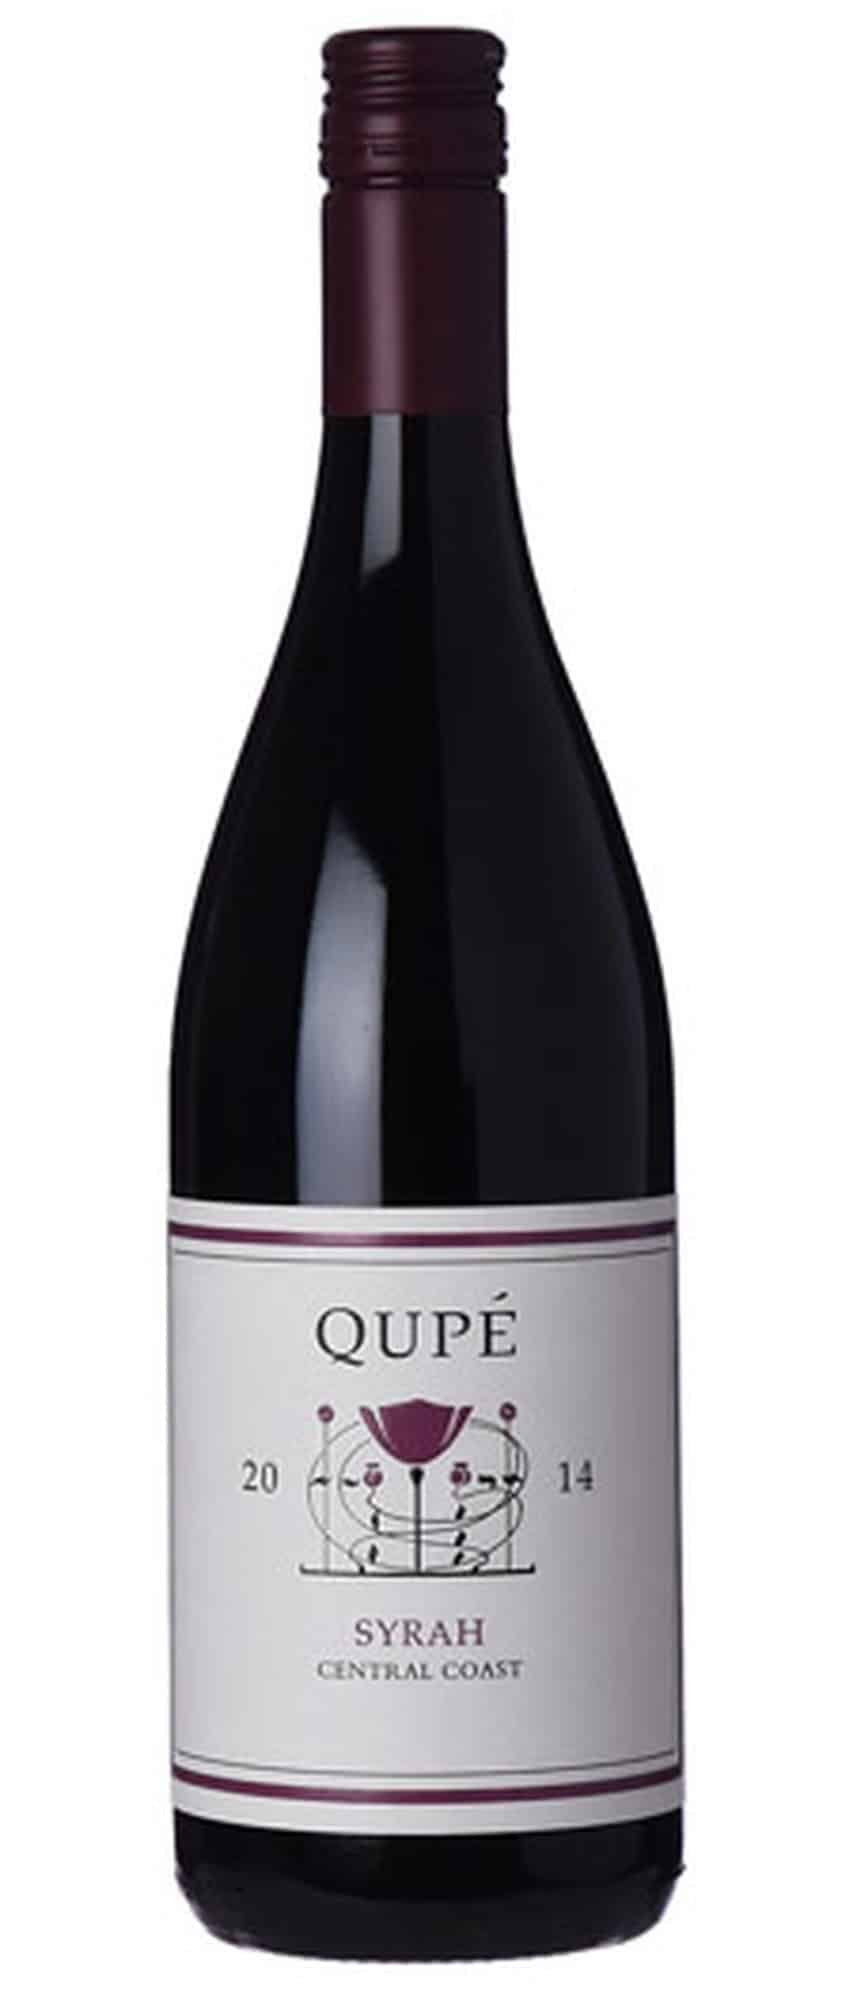 Qupe Central syrah